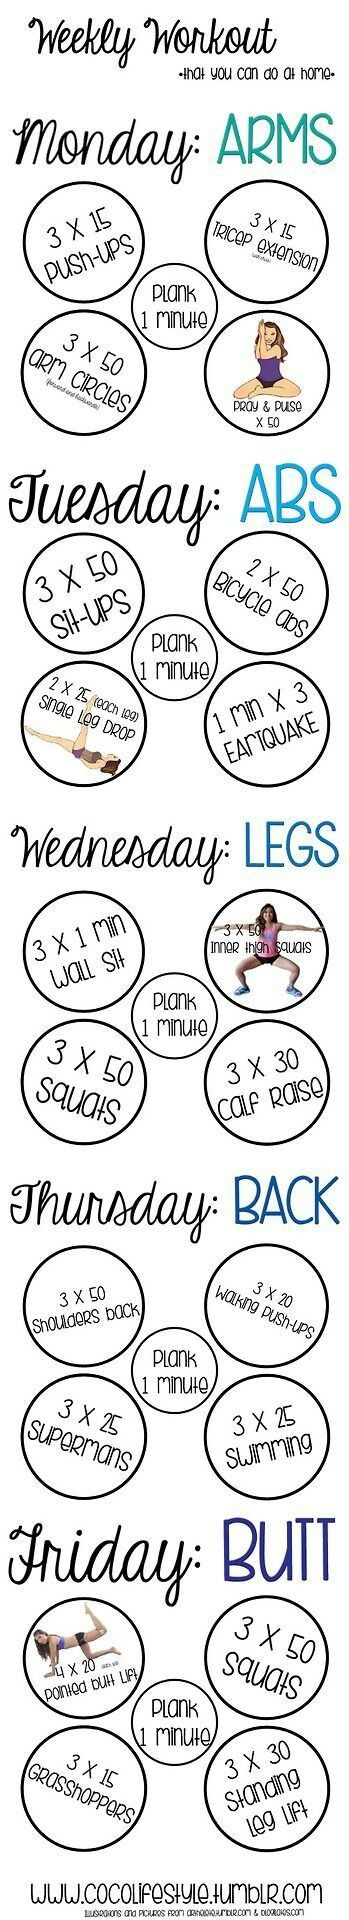 Weekly Workout  Exercising    Workout Exercises And Gym